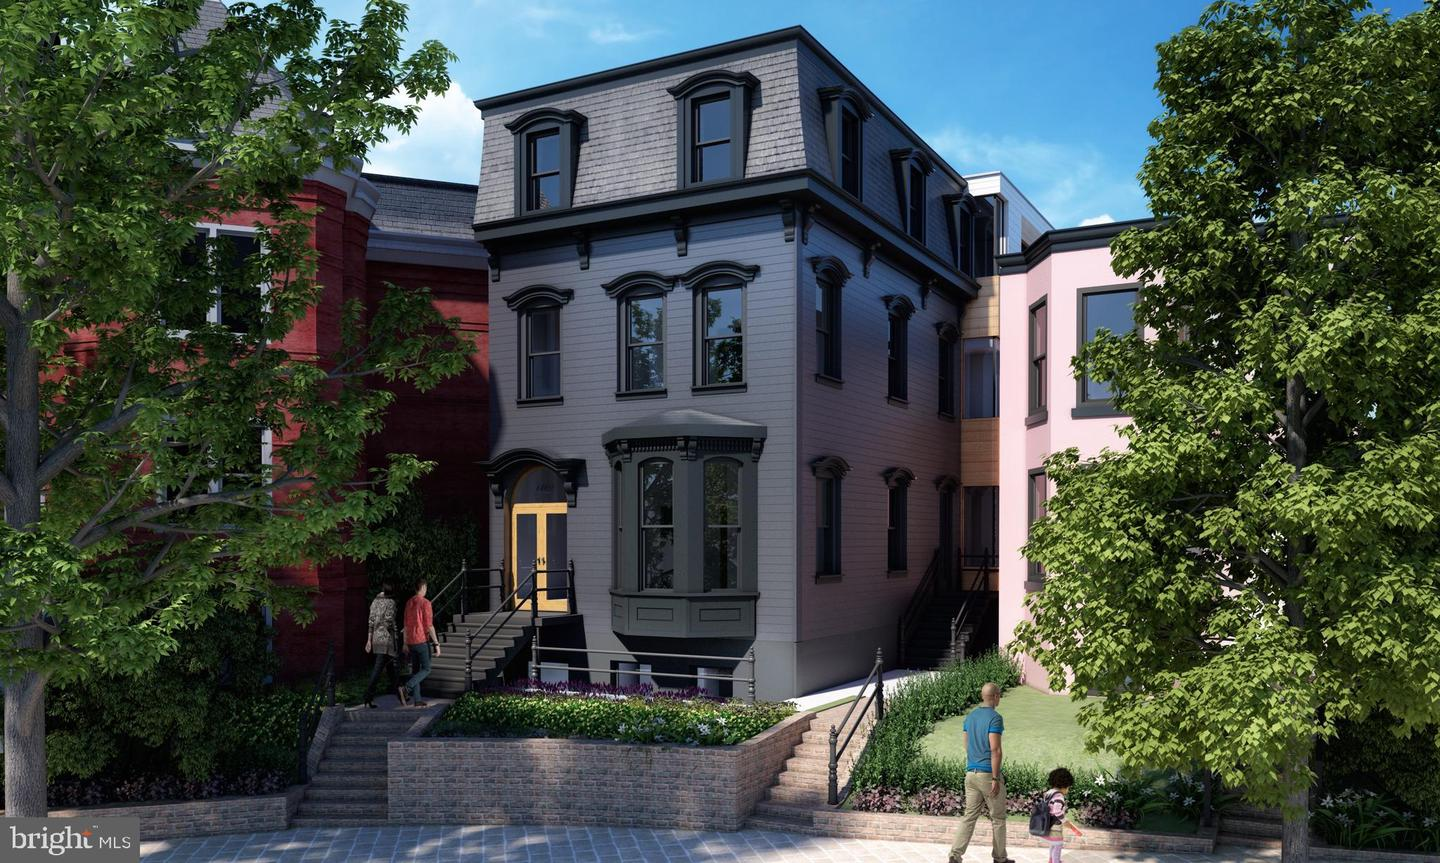 condominiums for Sale at 1469 Florida Ave NW #2 1469 Florida Ave NW #2 Washington, District Of Columbia 20009 United States